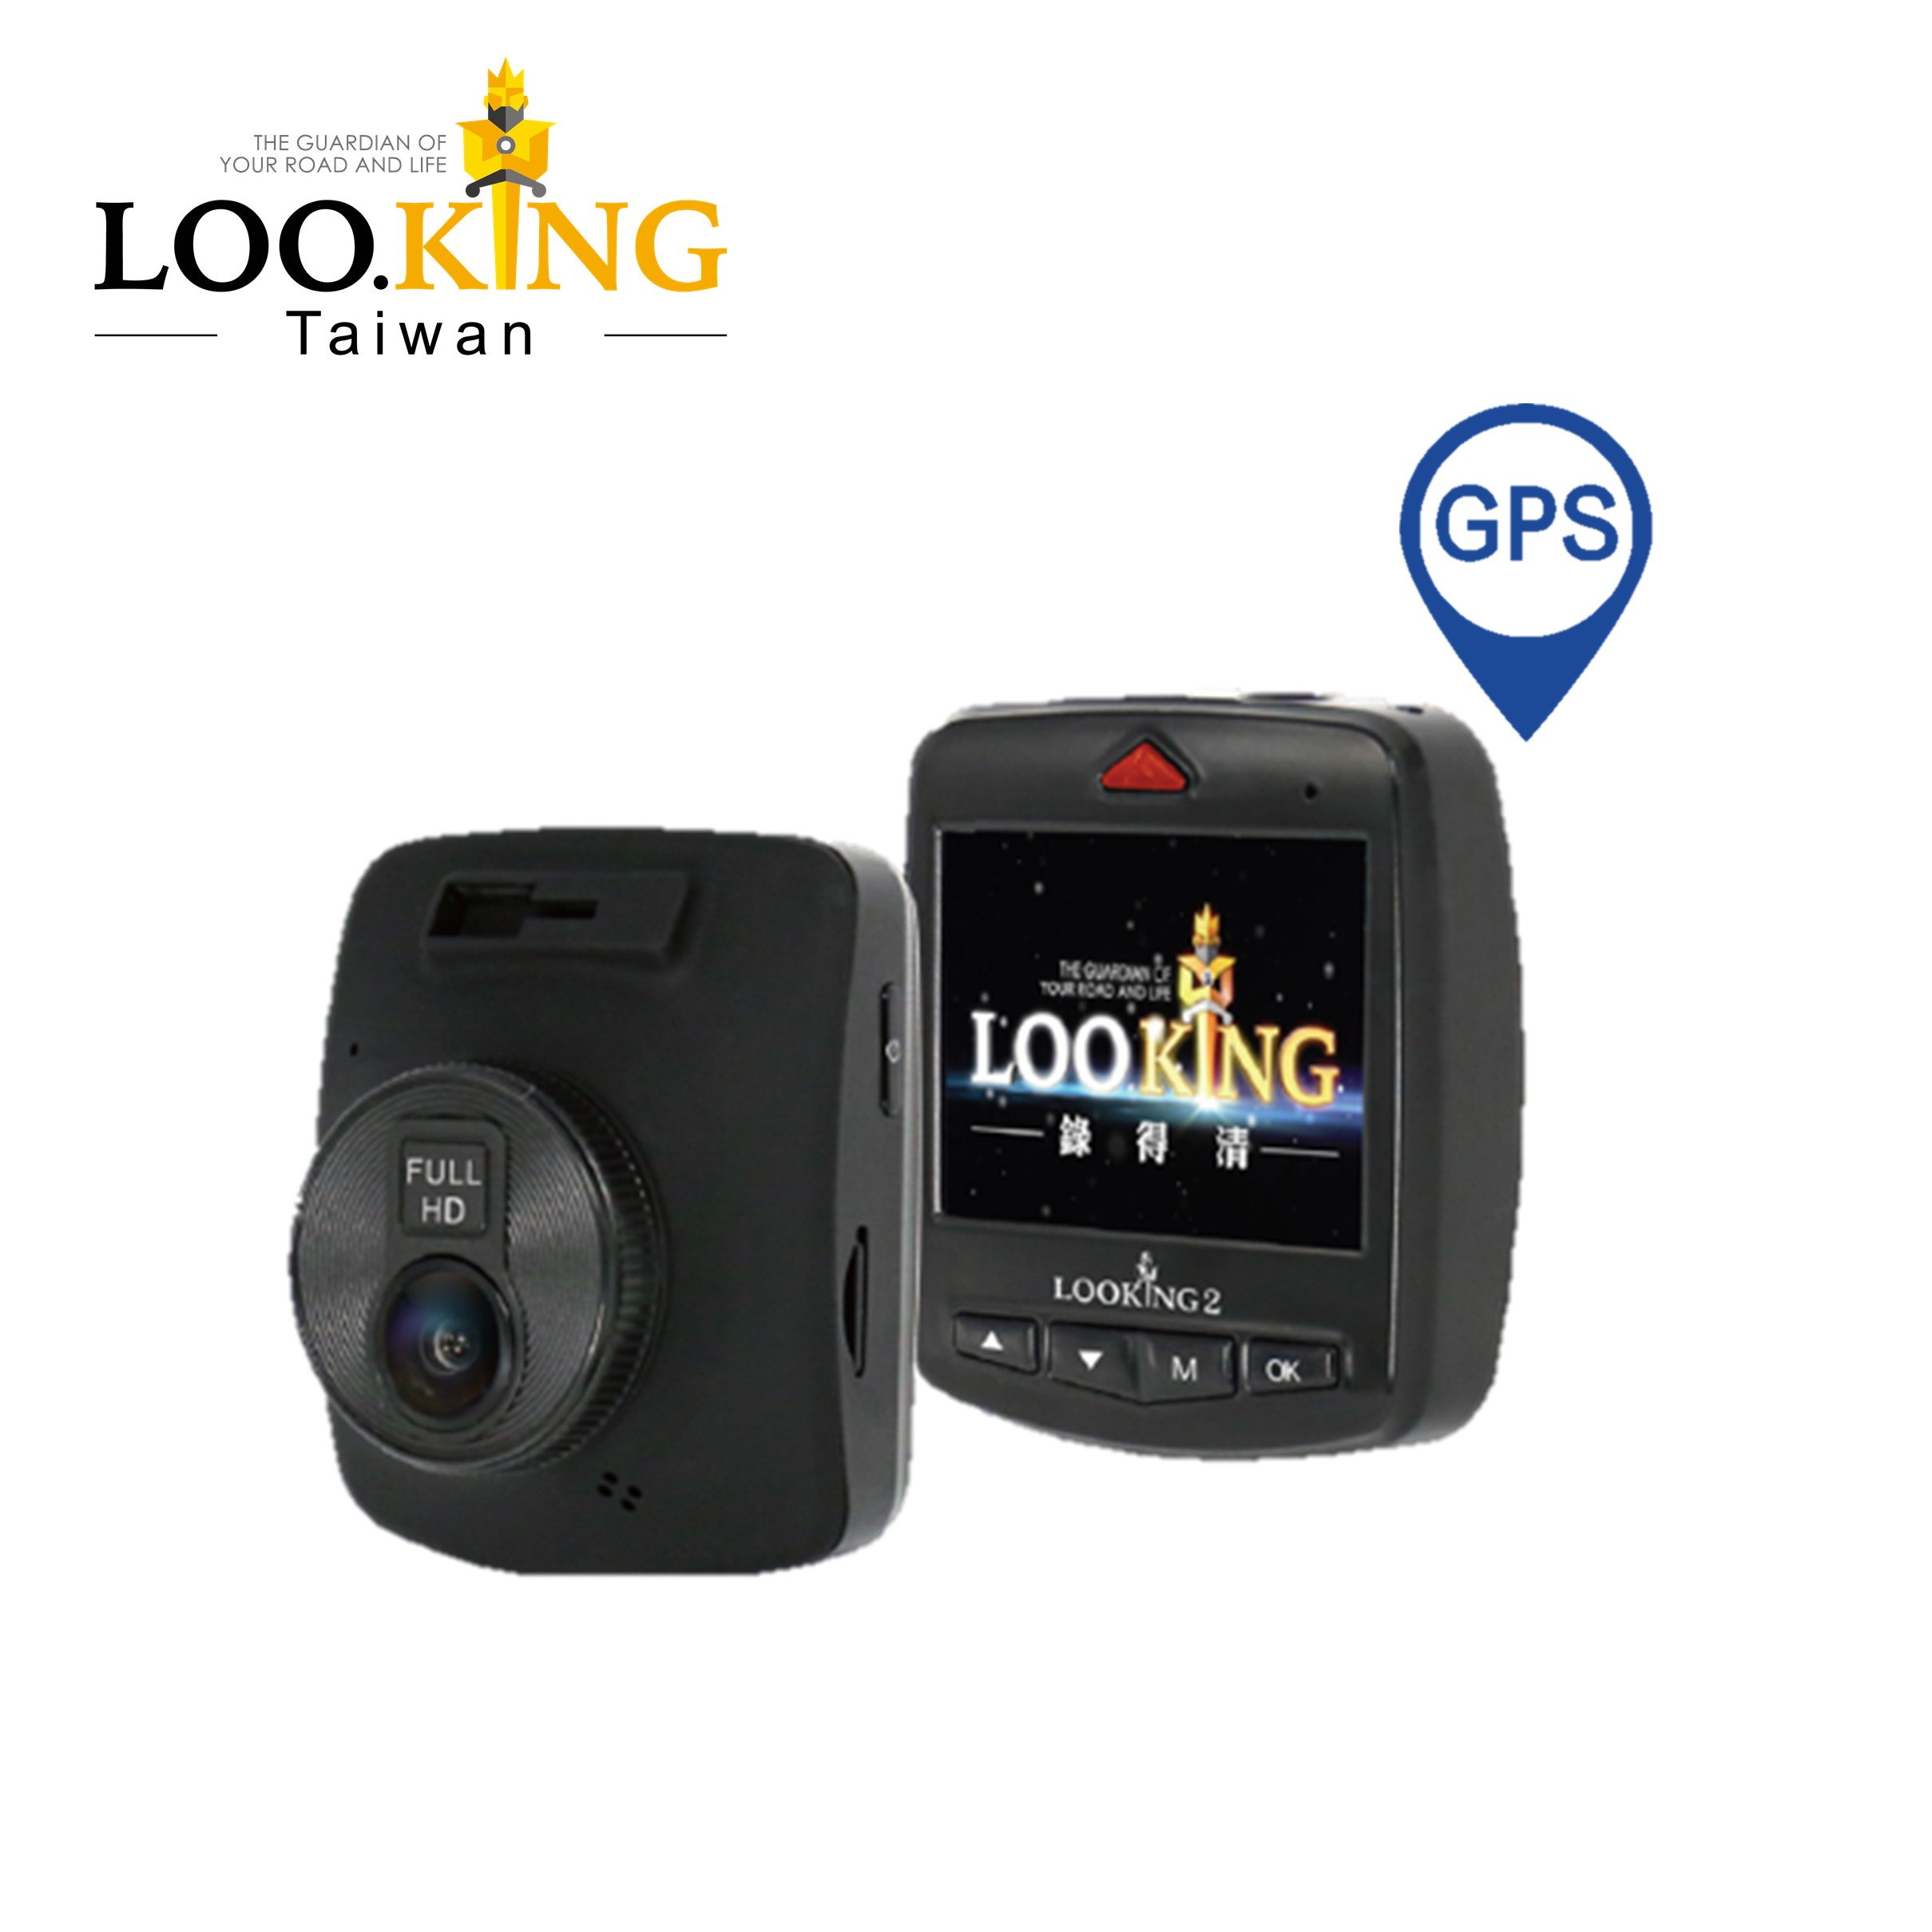 ĐÀI LOAN Hot-bán FHD 1080 P gps dashcam